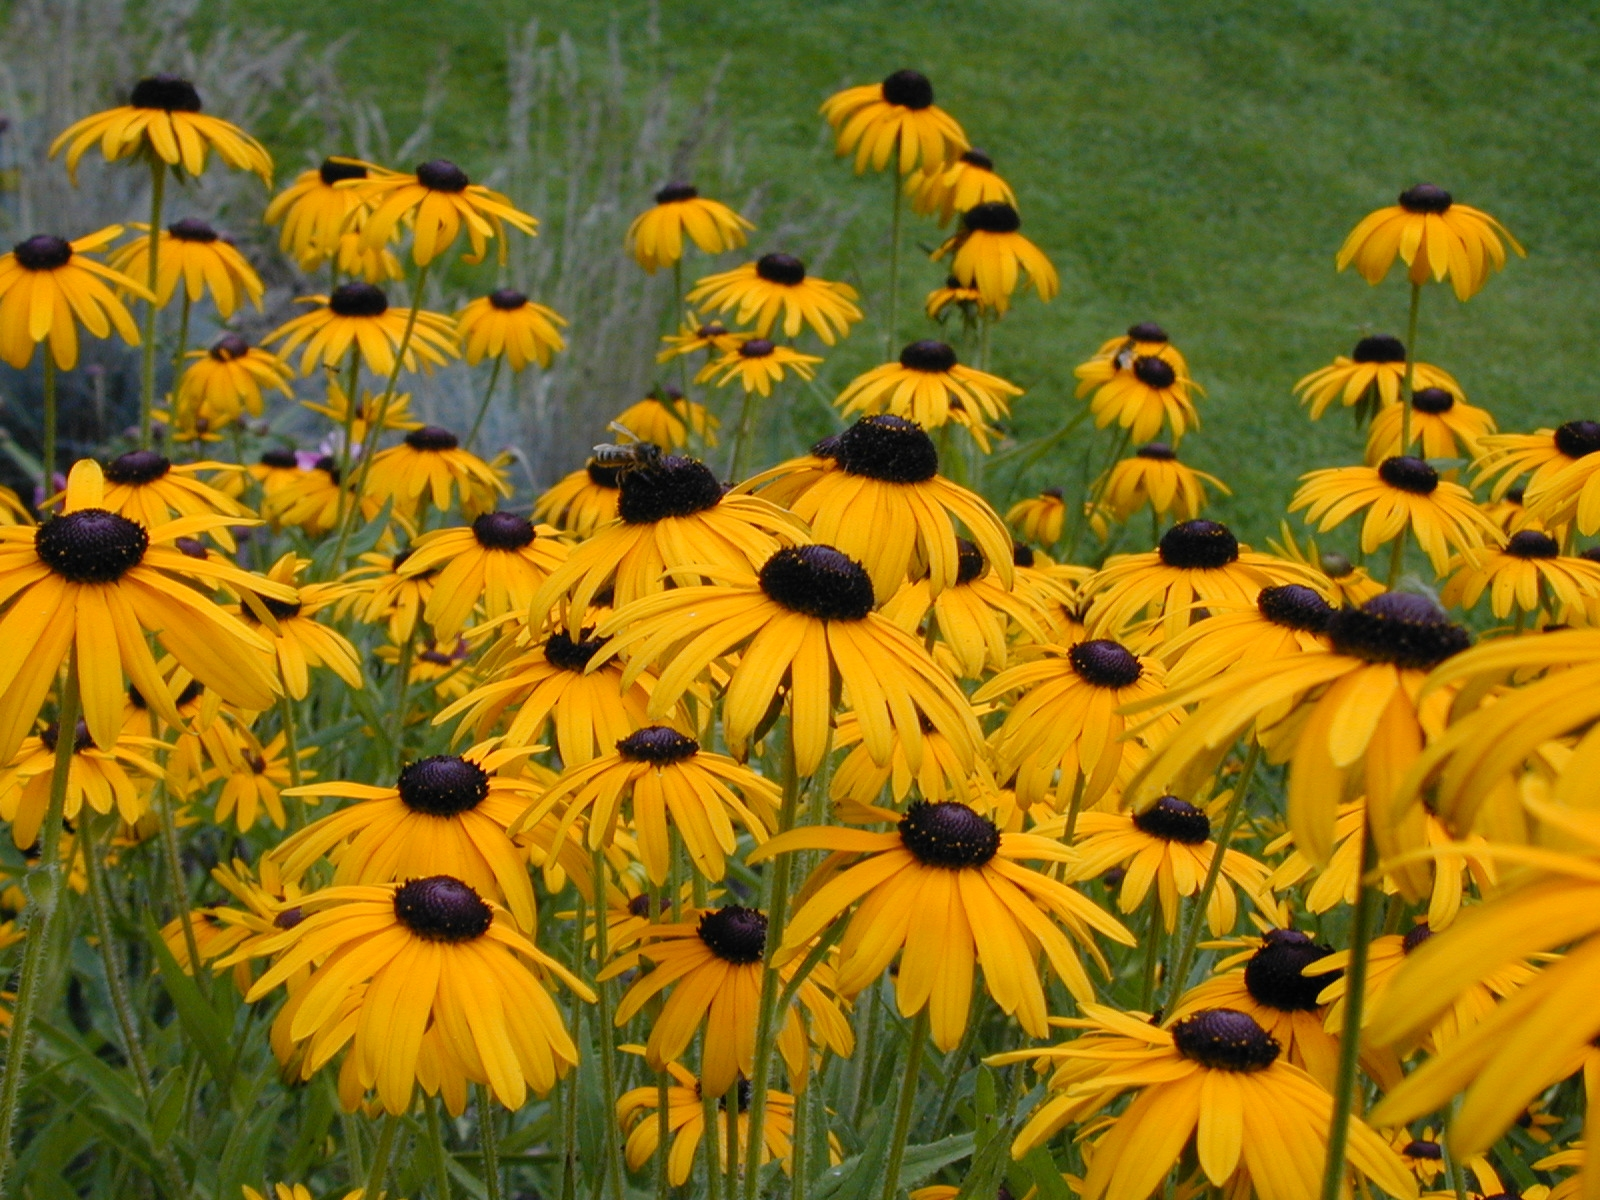 After 15 years of trying to grow a variety of plants on a Black eyed susans